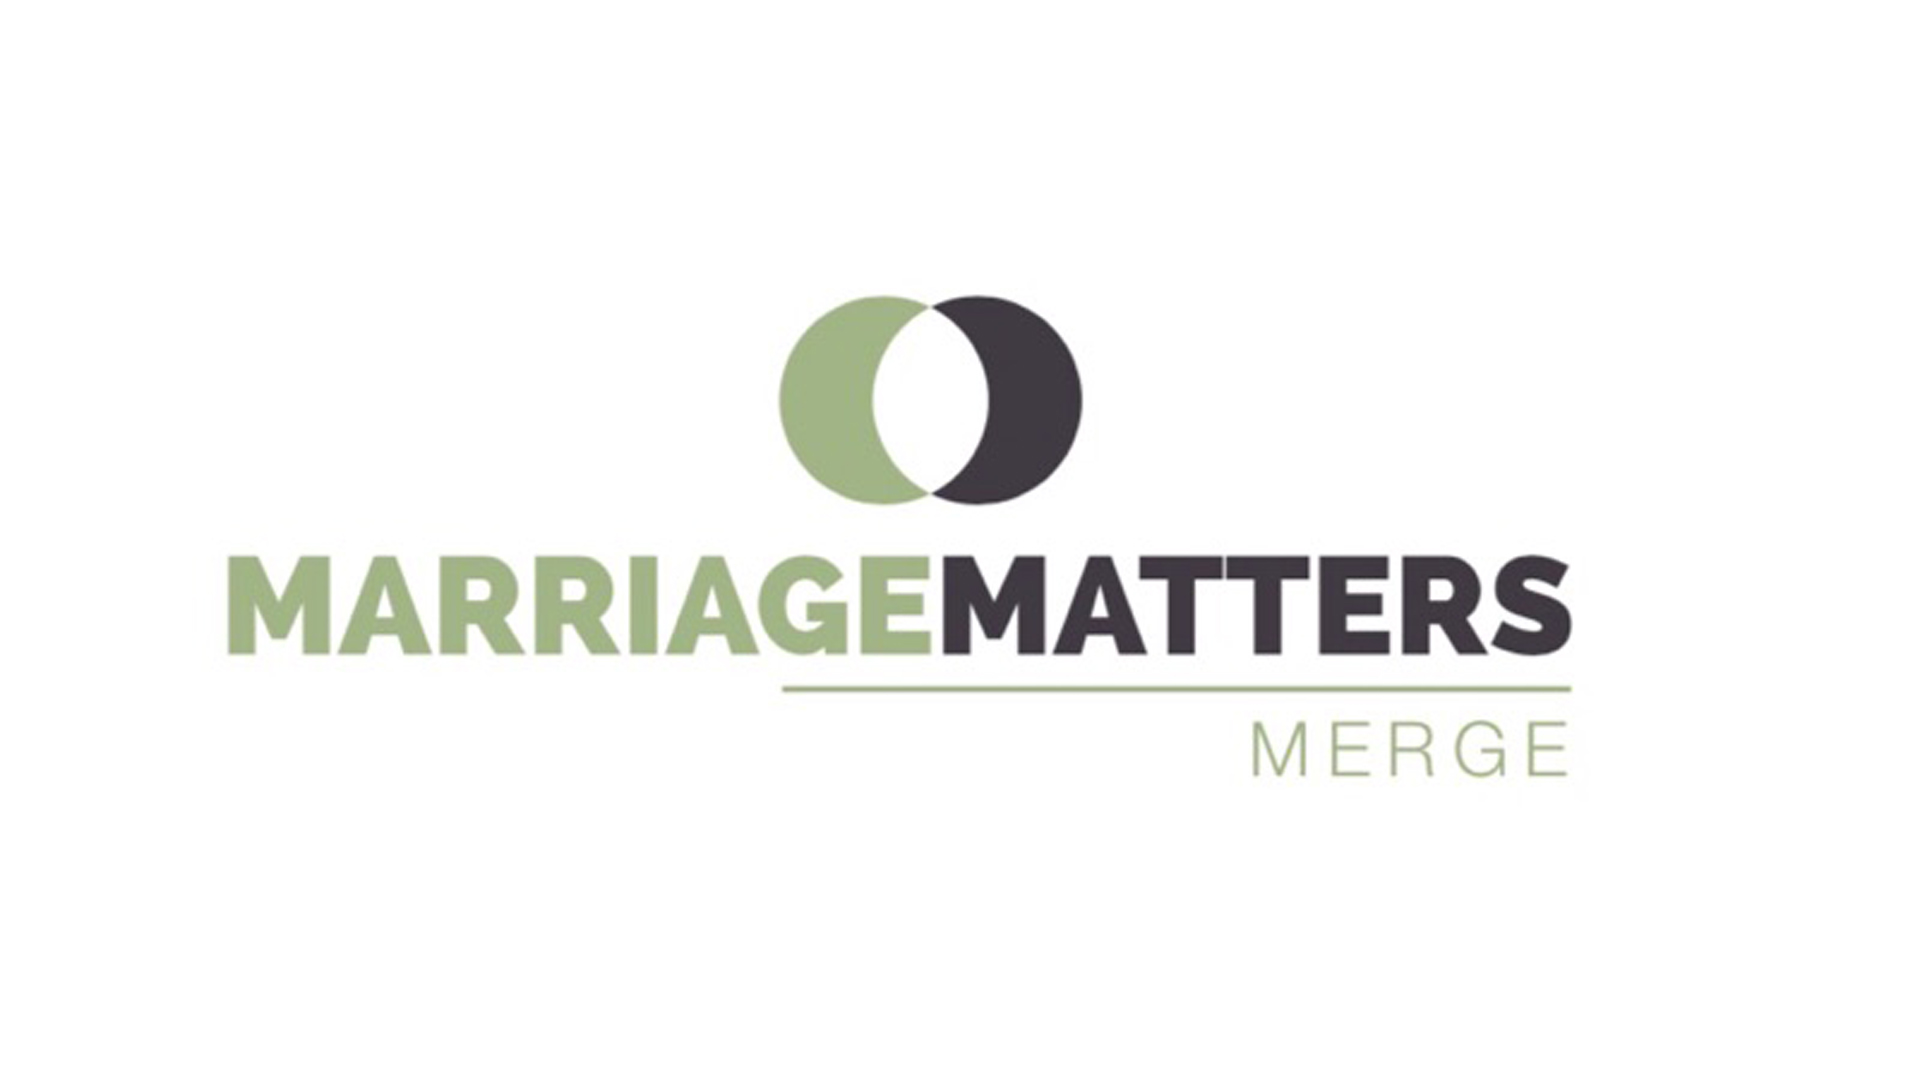 Marriagematters